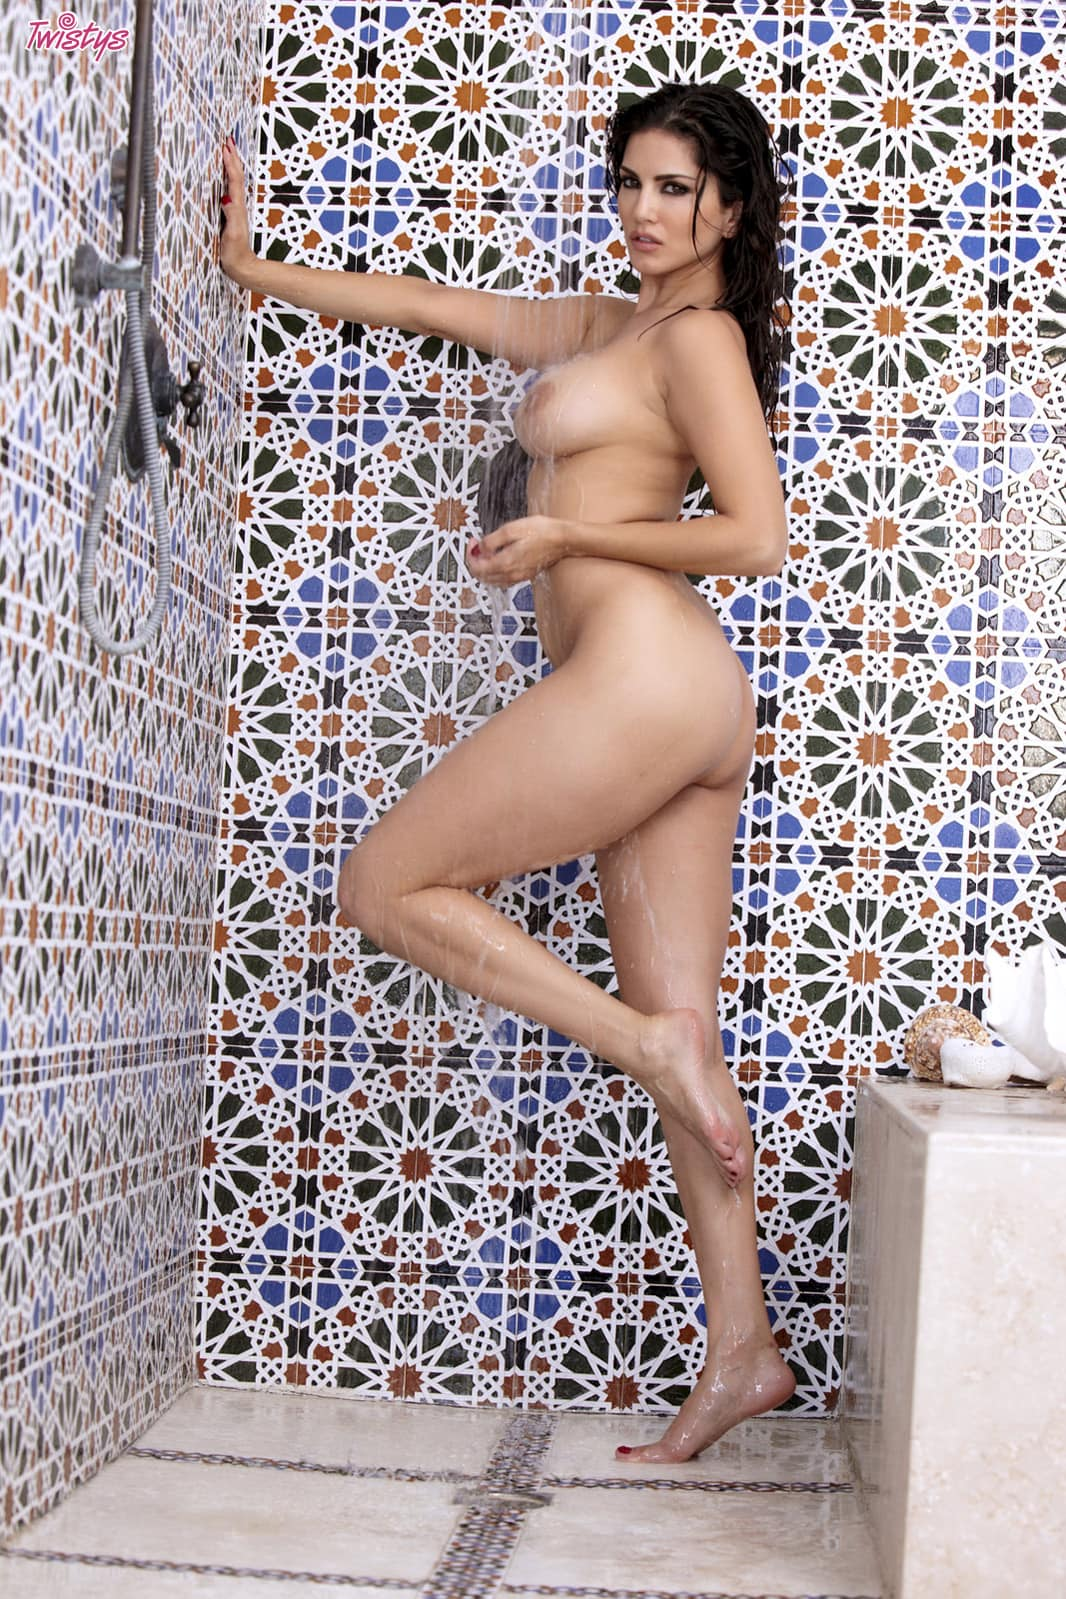 Sunny Leone posing naked in the shower